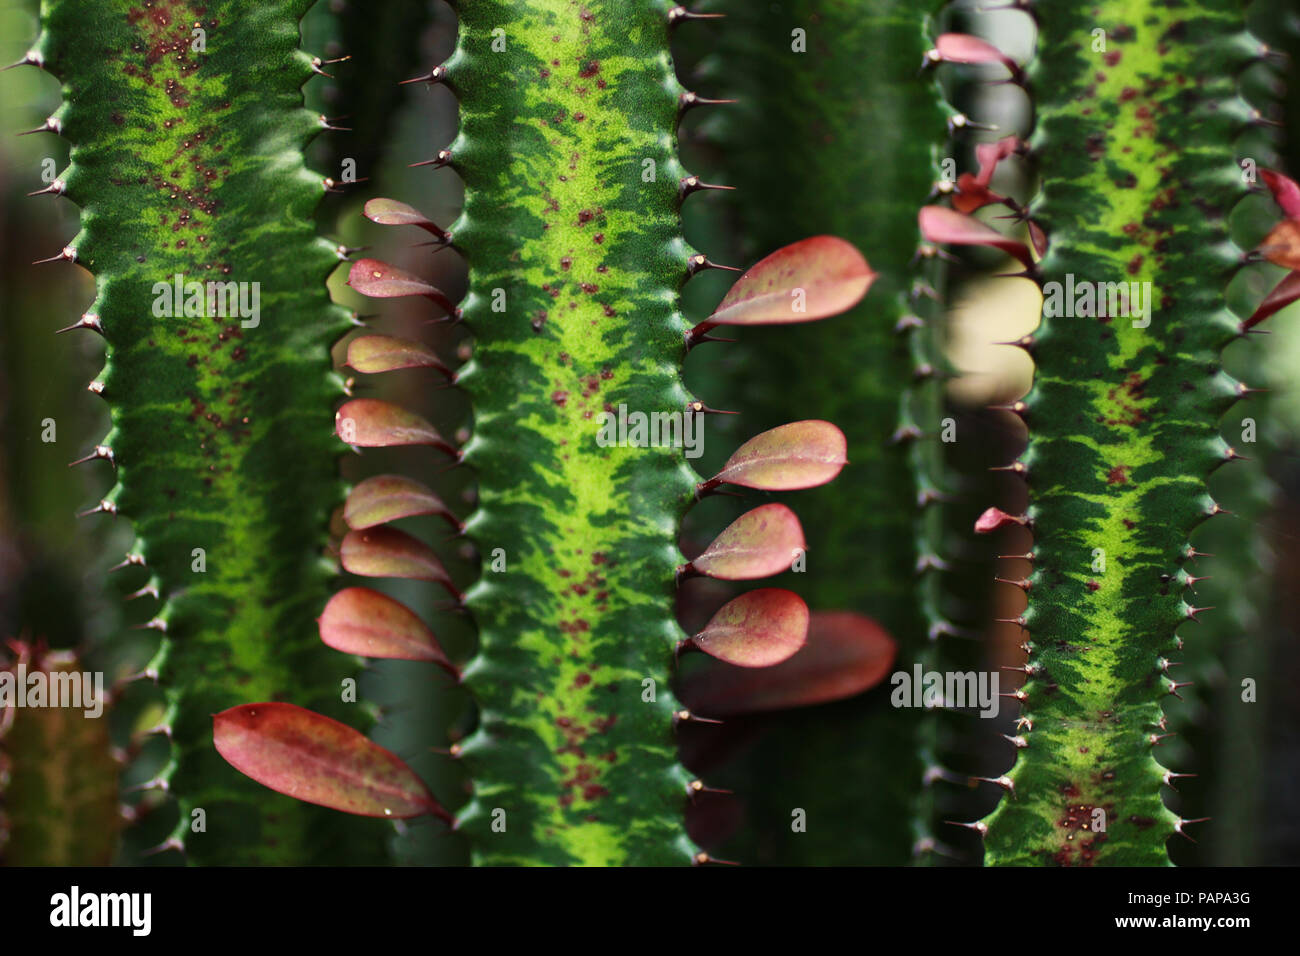 Cactus Spines close up. - Stock Image